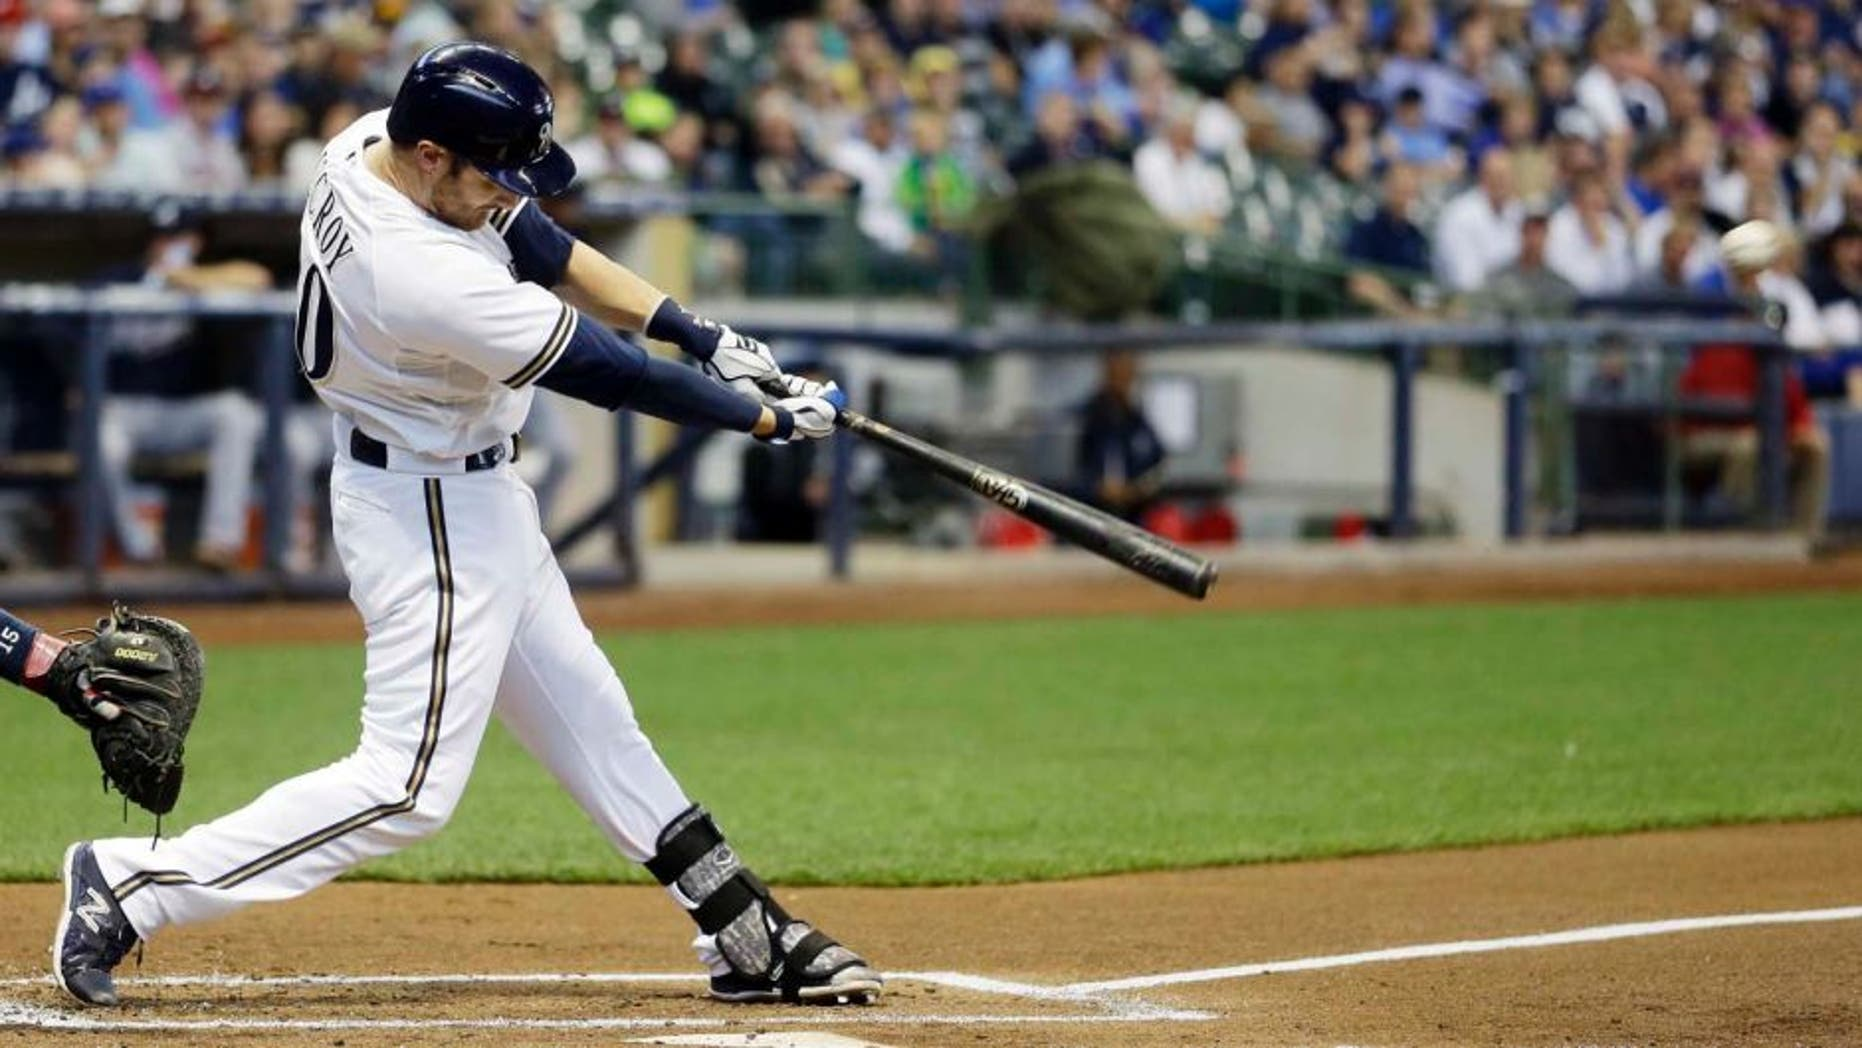 Tuesday, July 7: The Milwaukee Brewers' Jonathan Lucroy hits a home run during the first inning against the Atlanta Braves in Milwaukee.